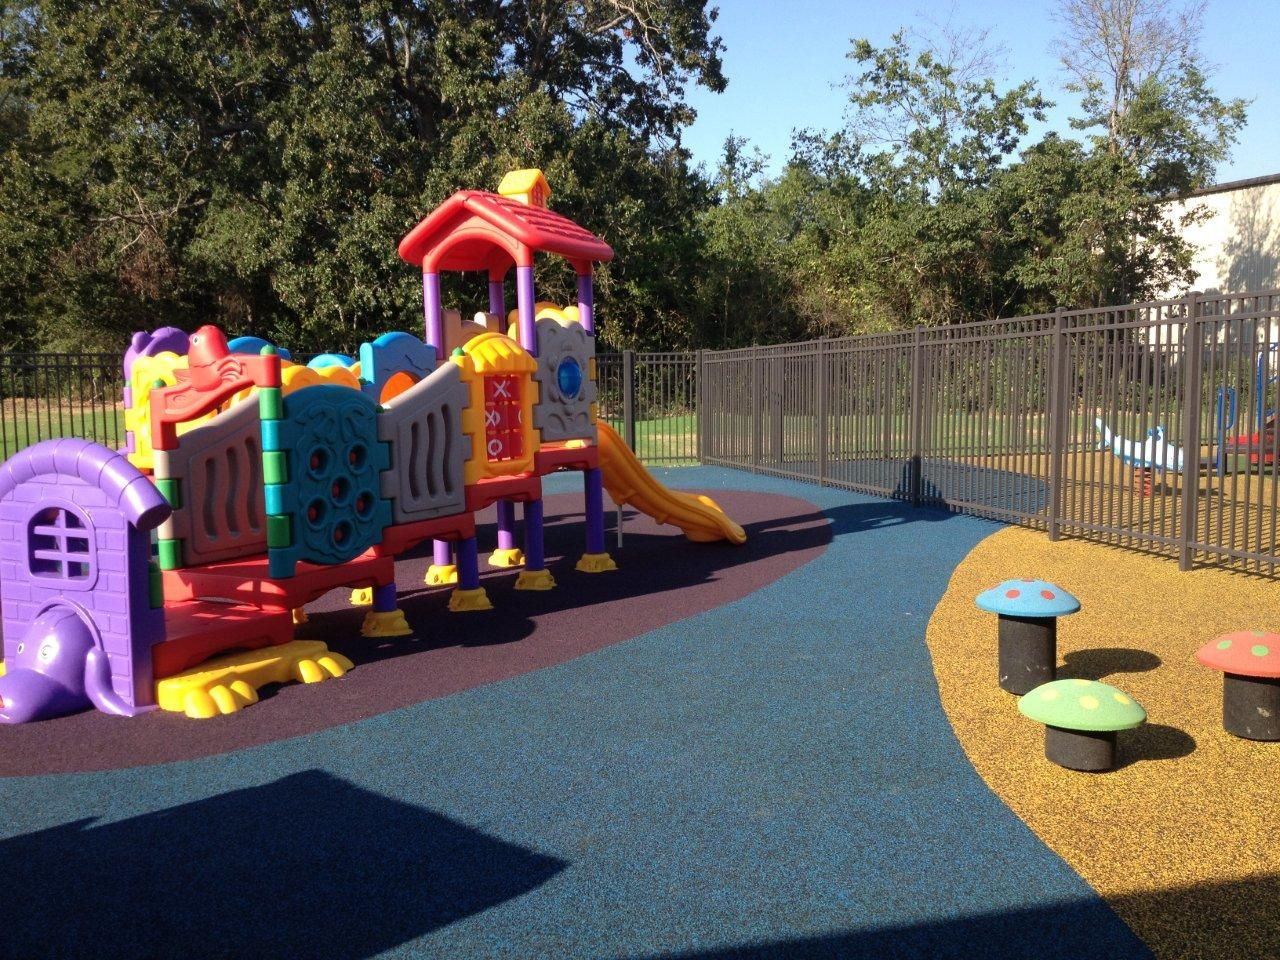 Inexpensive Outdoor Play Area Equipment For Daycare And